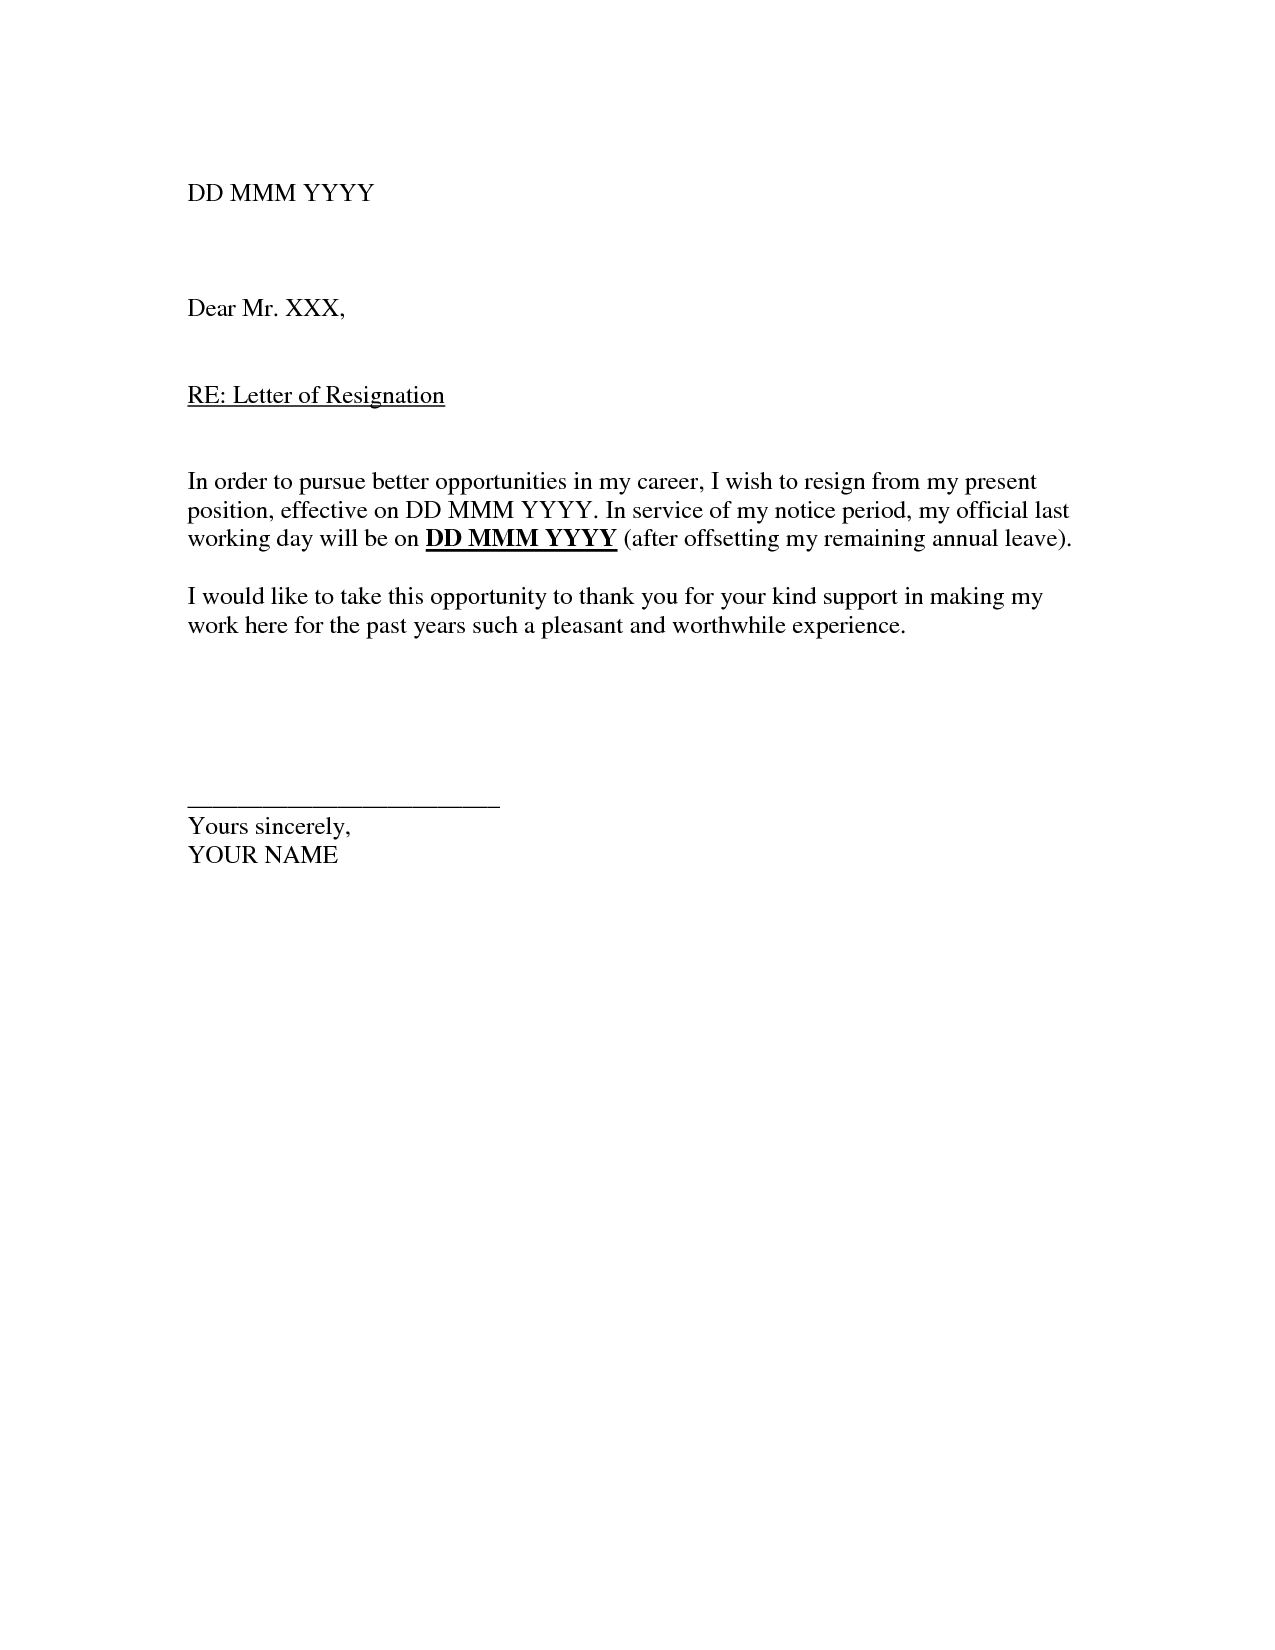 resignation letter template rich image and